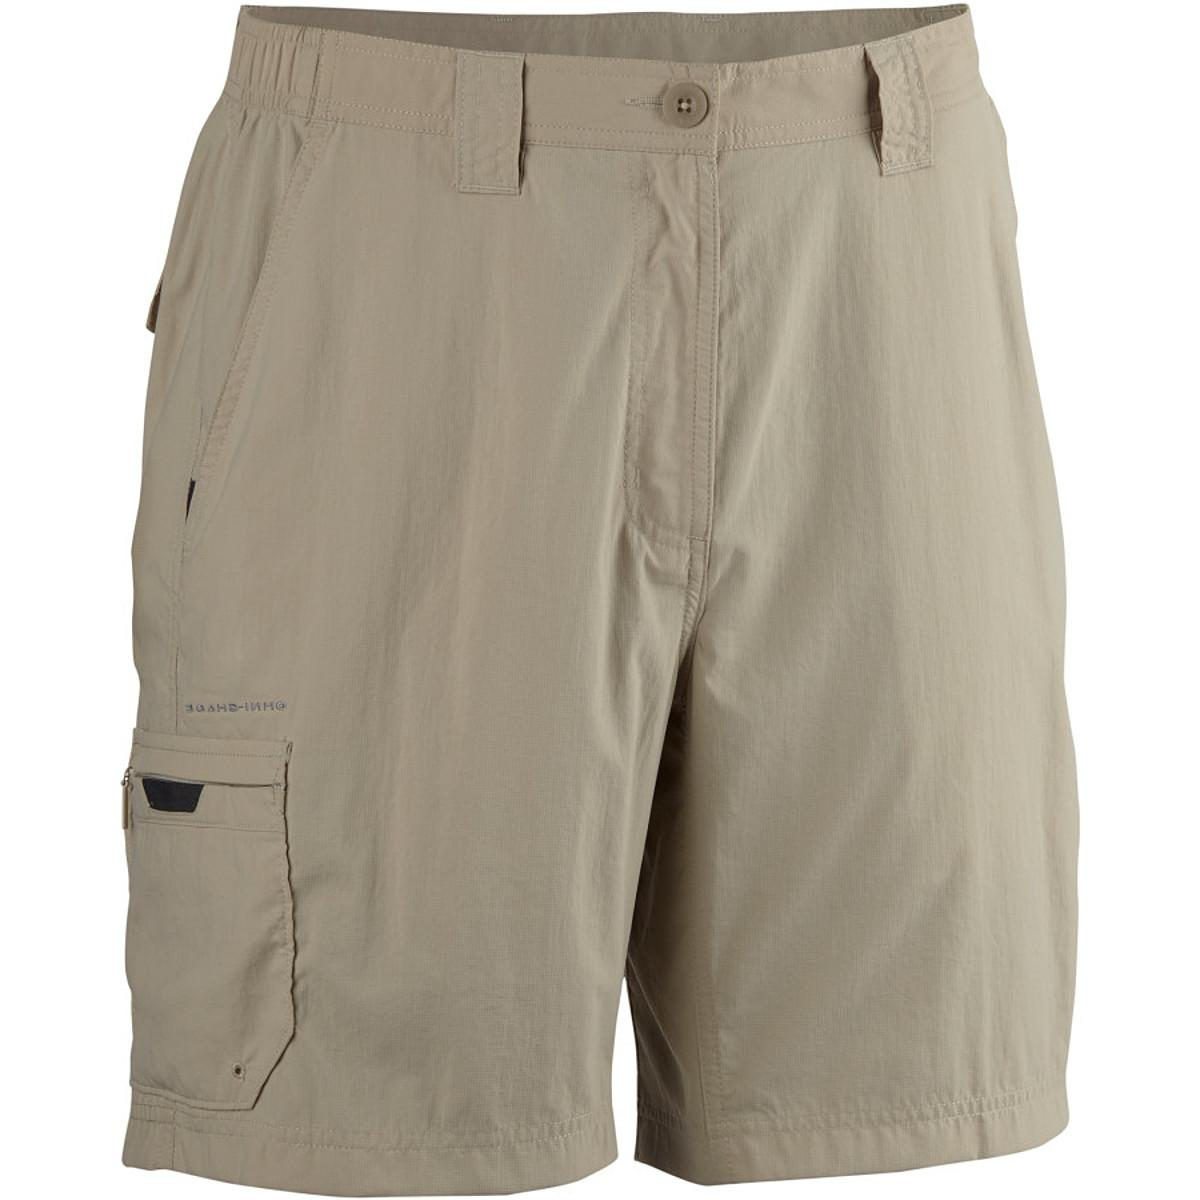 Columbia Blood And Guts II Short - Men's Fossil, 32x10